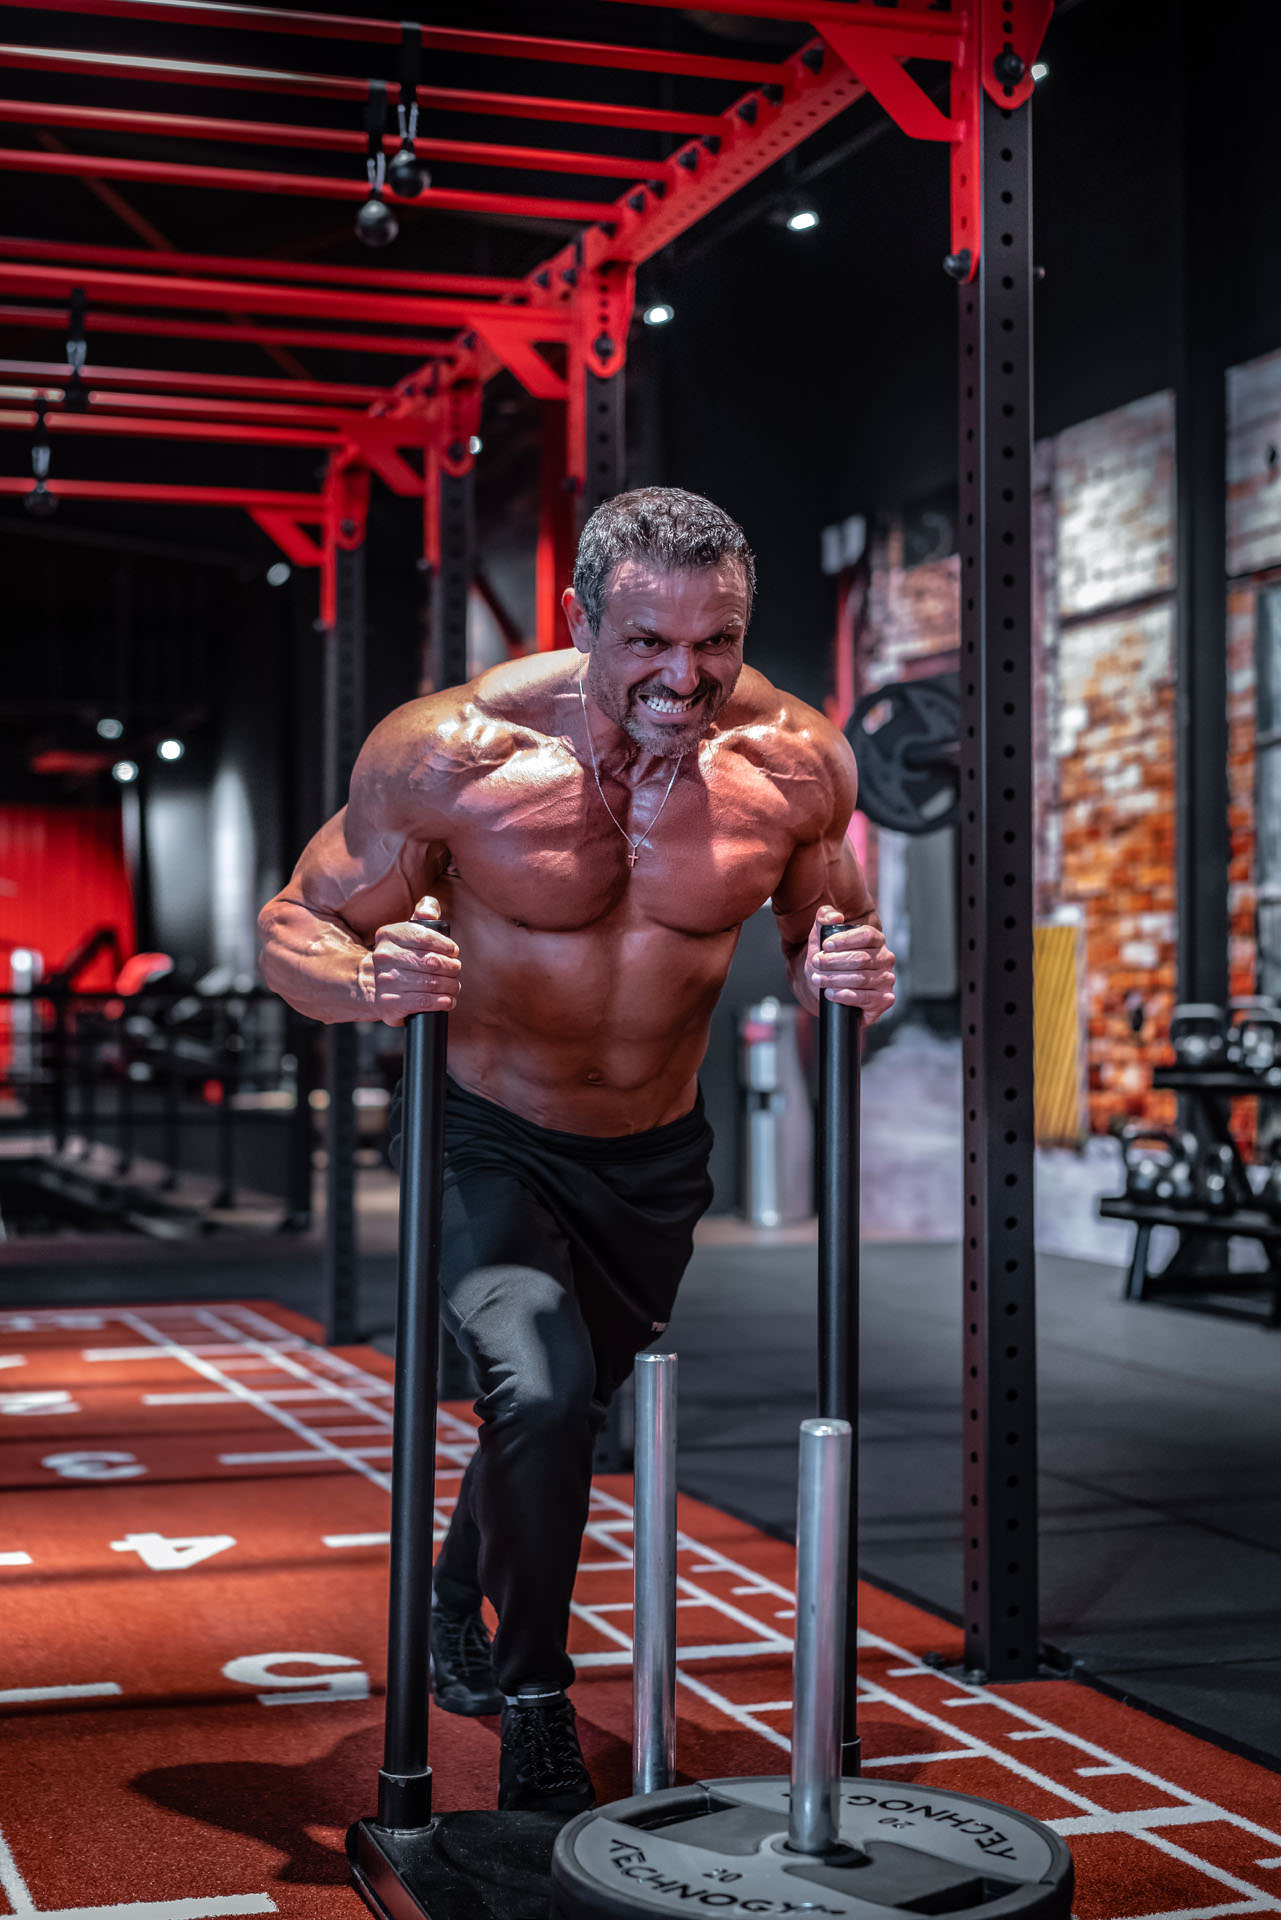 2019-03-04 - Enzo - Muscle & Fitness - 06756 - 1920px